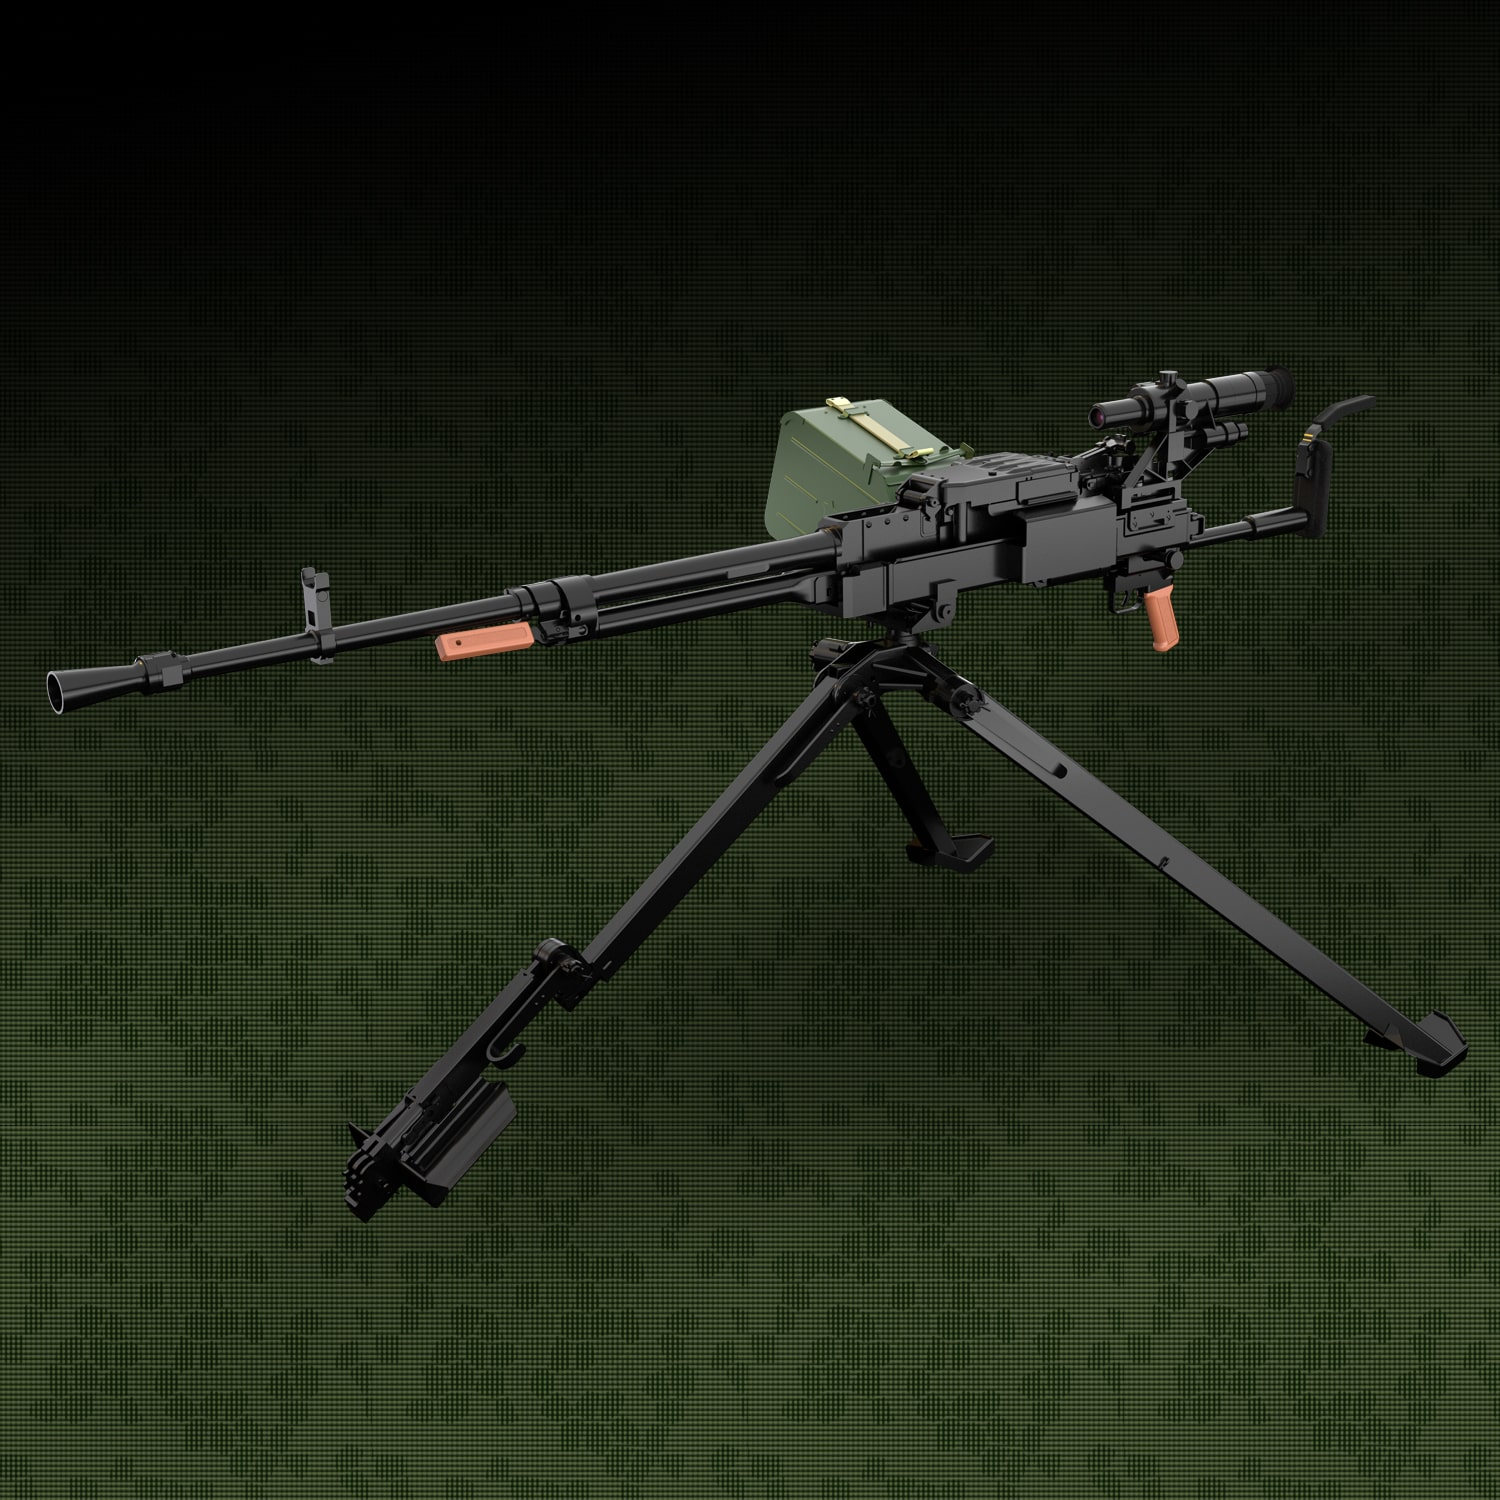 NSV 12.7mm UTYOS heavy machine gun